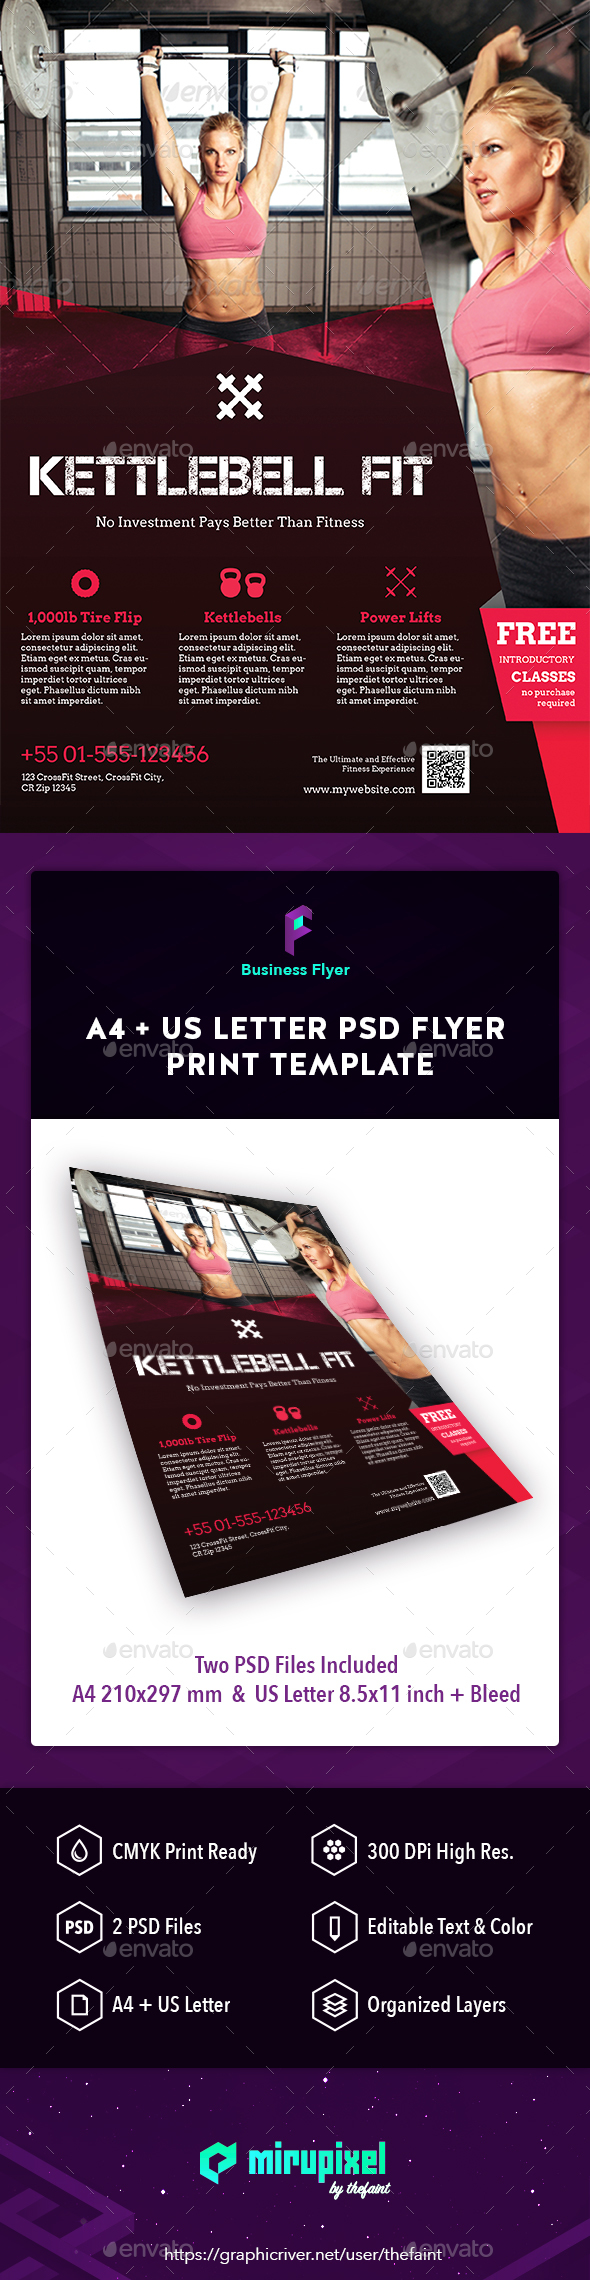 Business Flyer - Kettlebell Fit - Sports Events